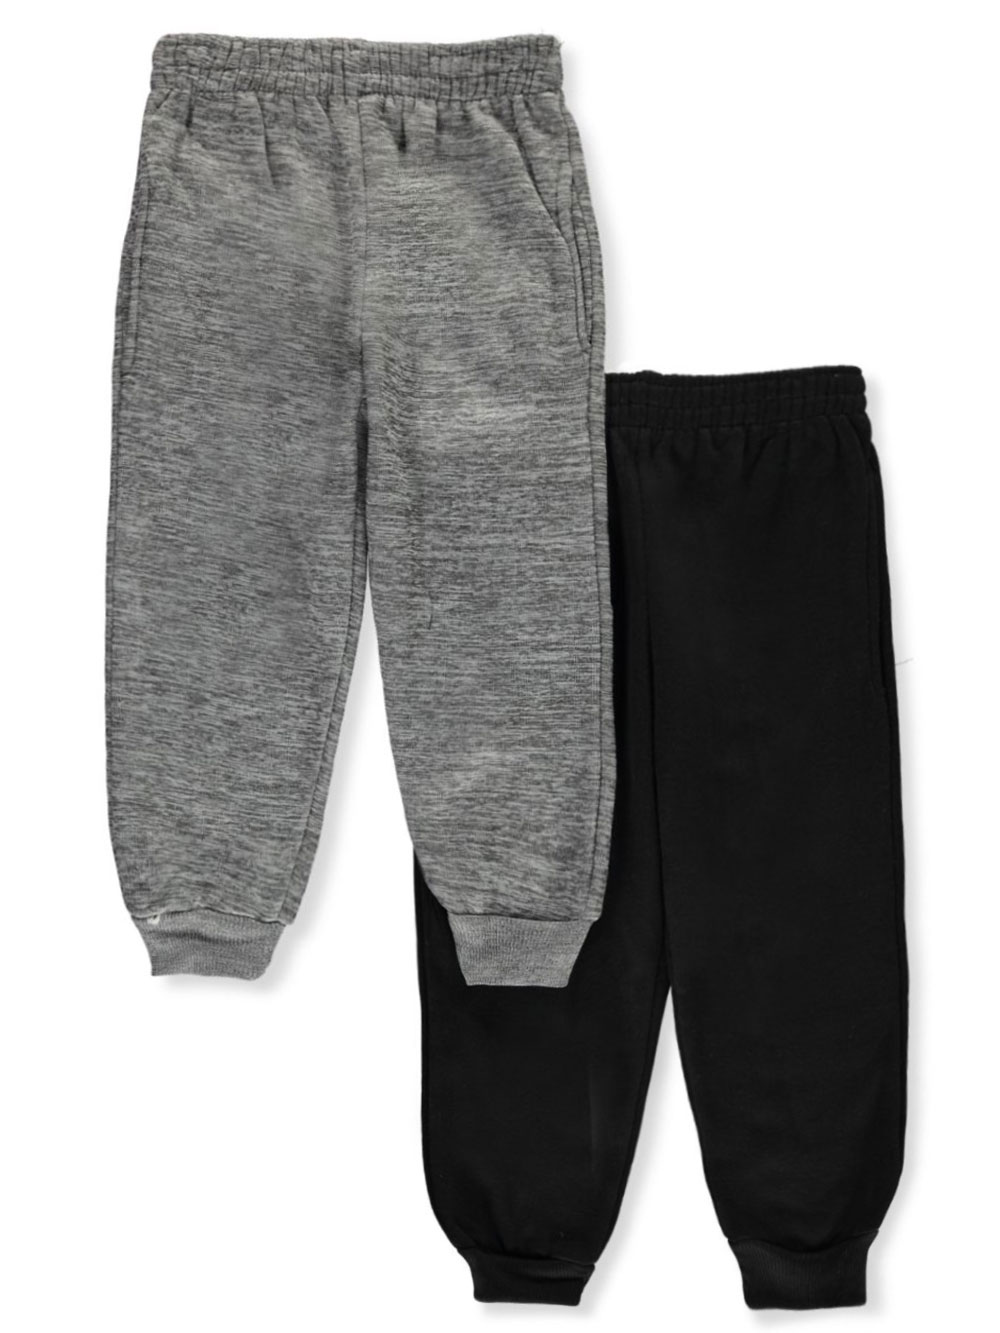 Gray and Black Sweatpants